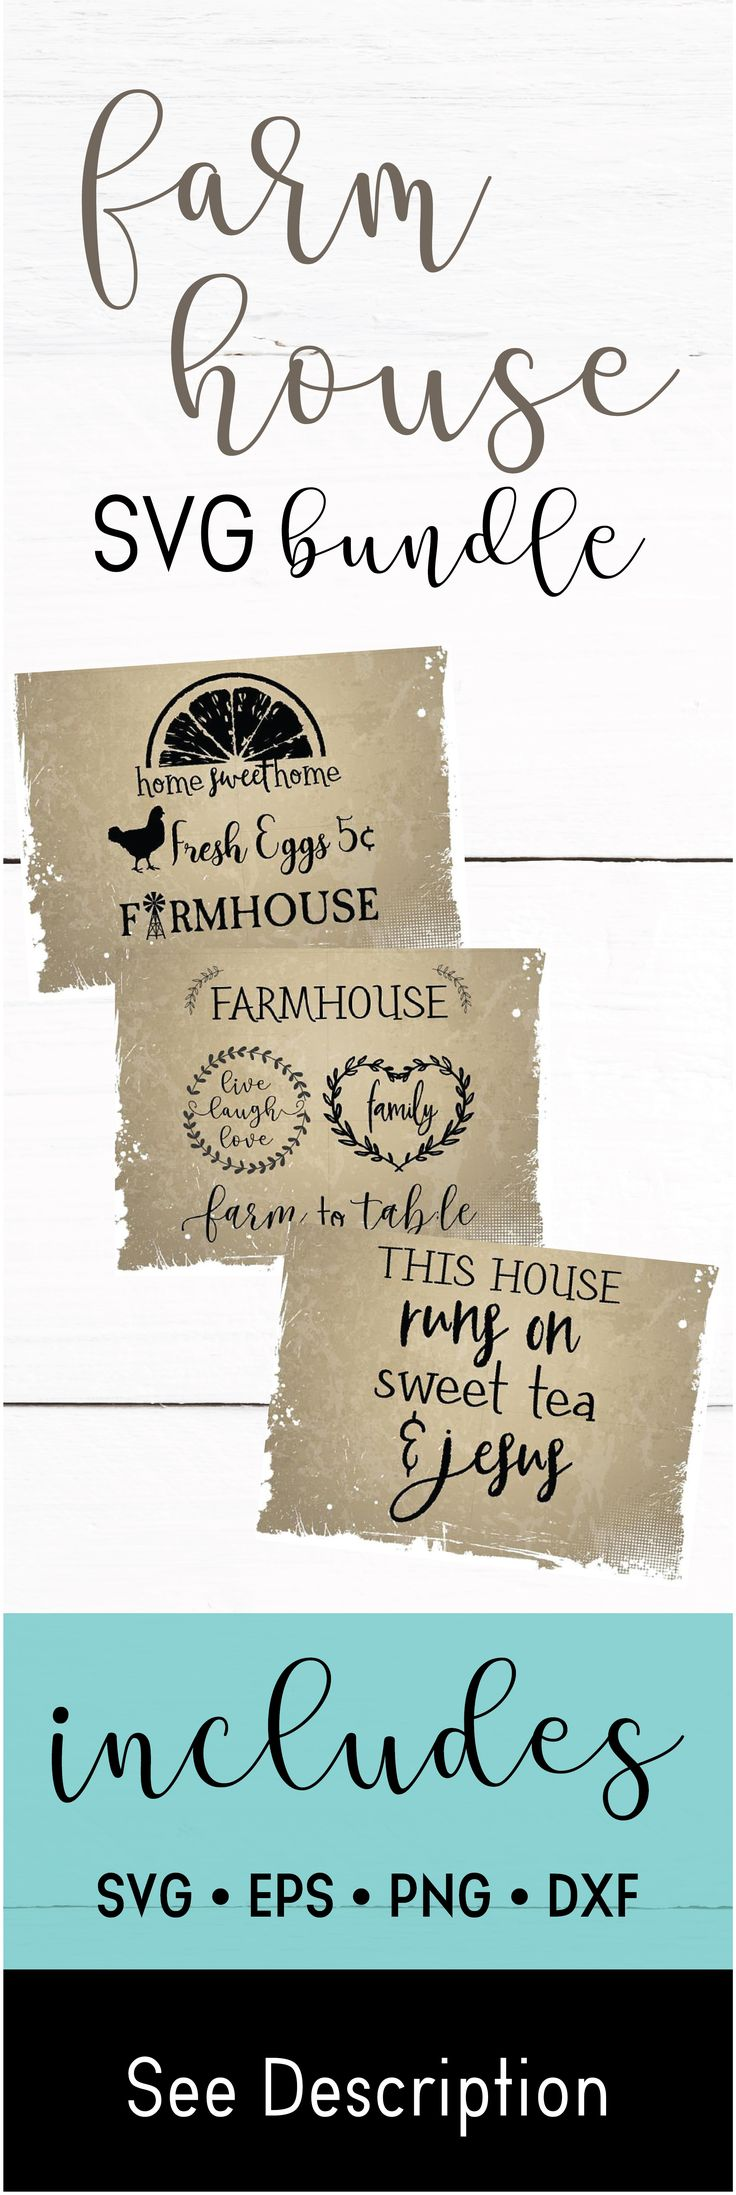 Farmhouse SVG Pack - Farmhouse Silhouettes - Sweet Tea Jesus svg - farm to table svg - fresh eggs svg - home sweet home svg, svg,eps,png,dxf